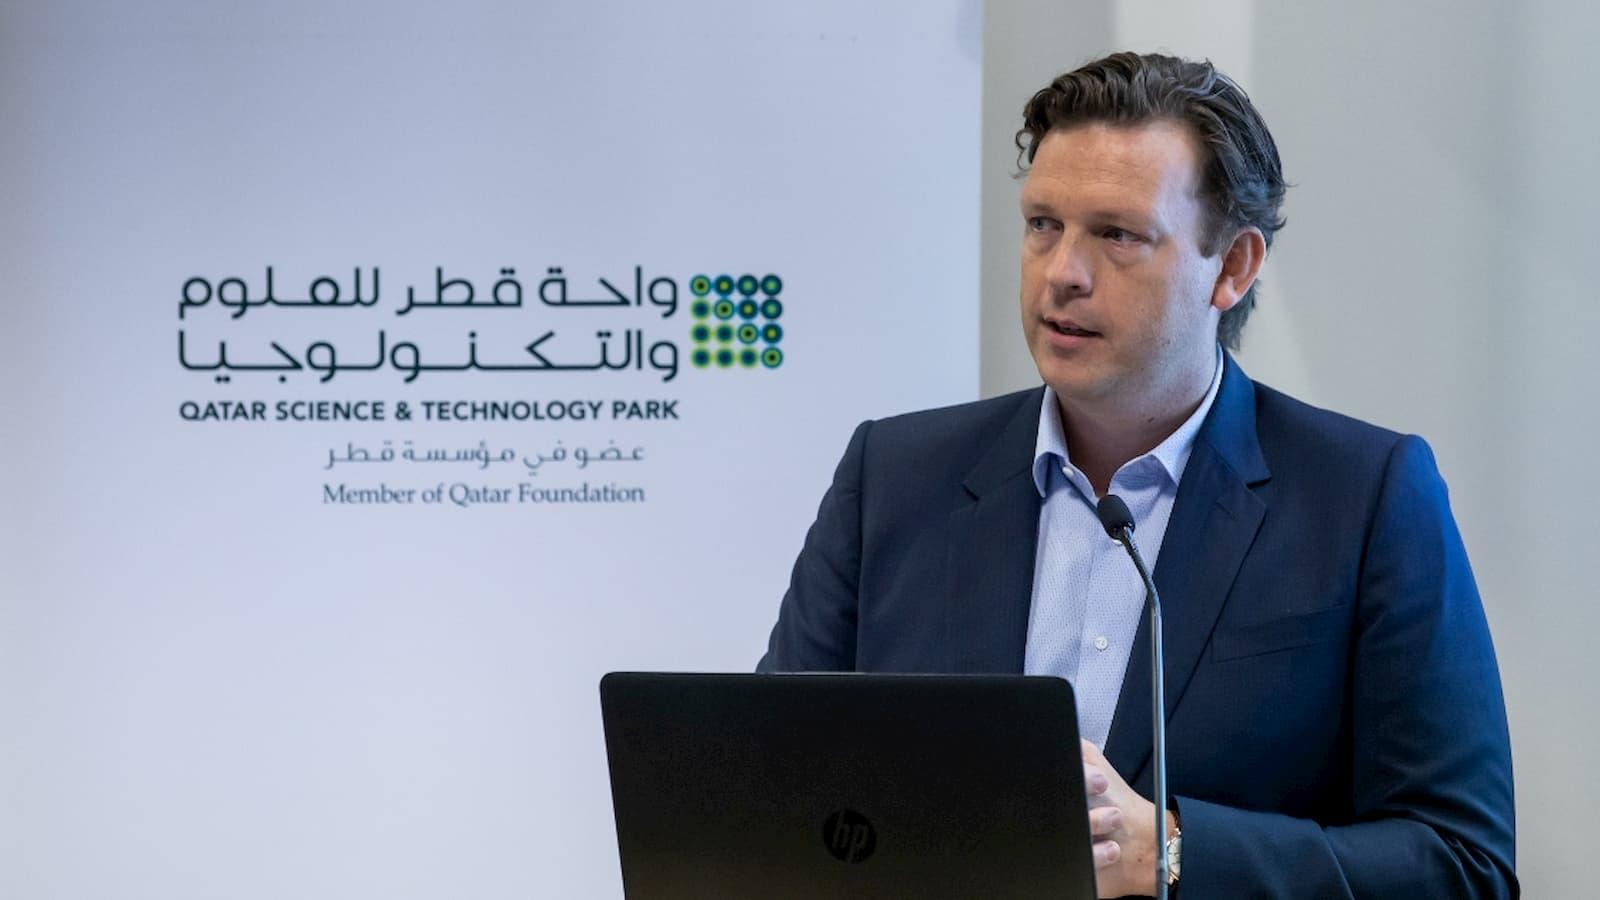 SC sustainability expert participates in online lectures with HBKU